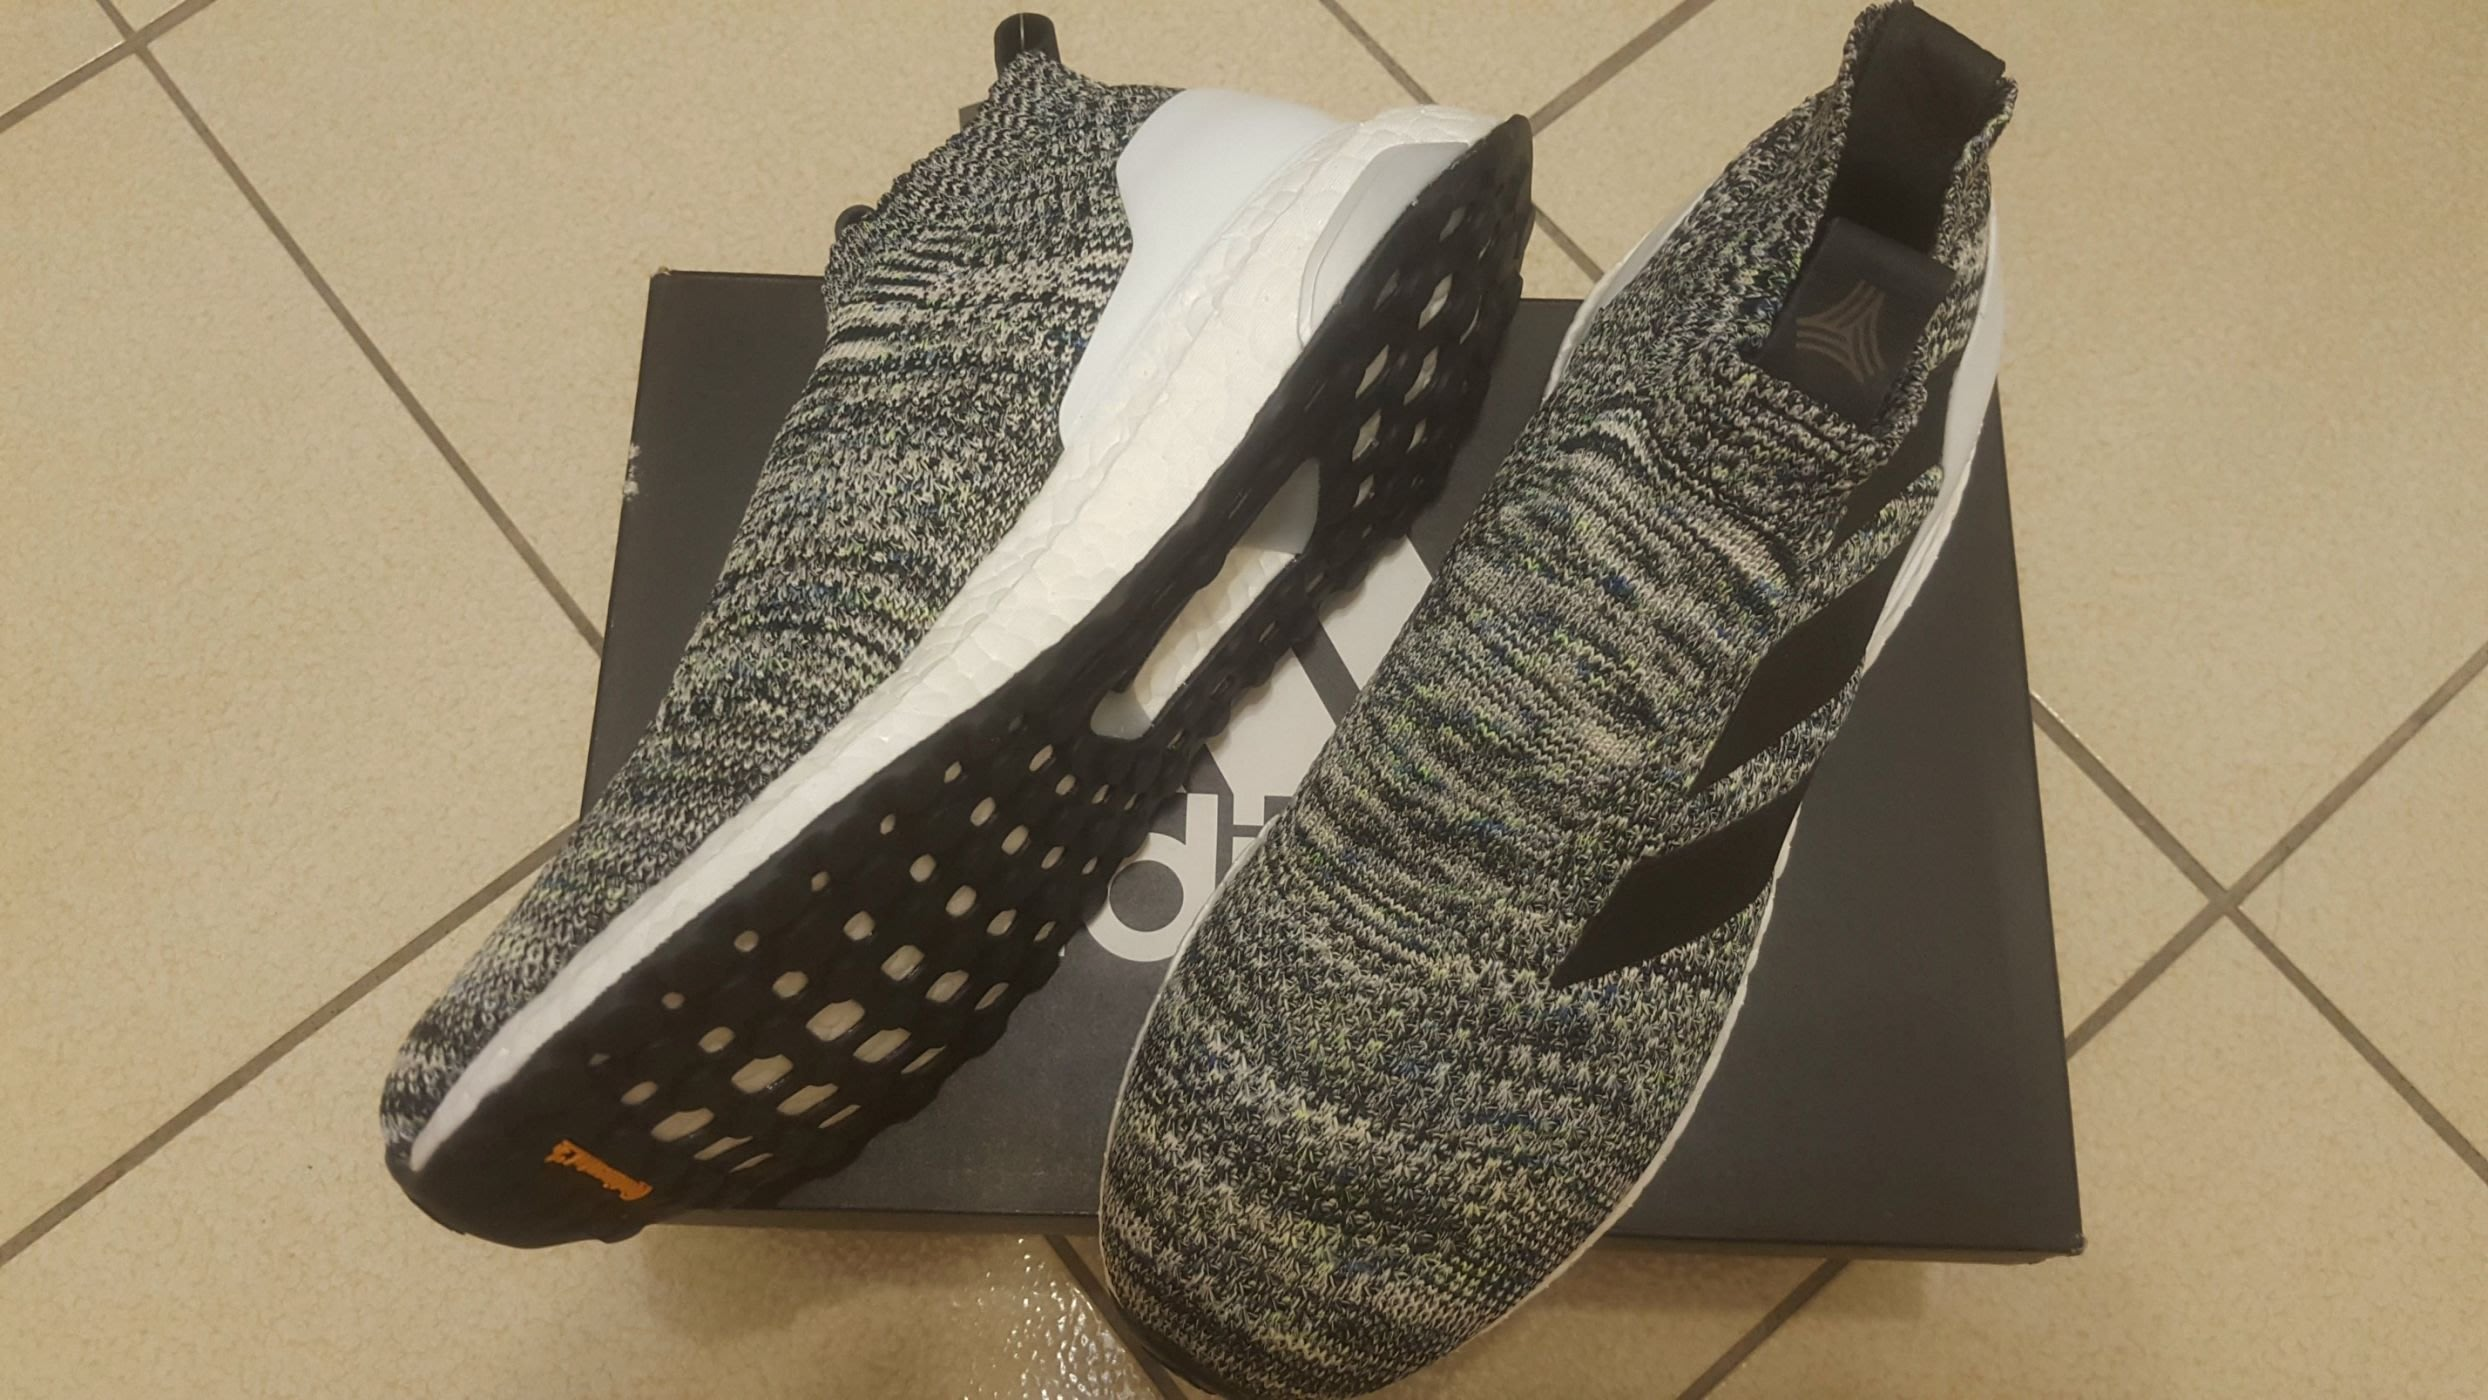 separation shoes ff4f3 015d3 Adidas Ace 16+ A16+ PureControl Ultra Boost Multi-Color US7.